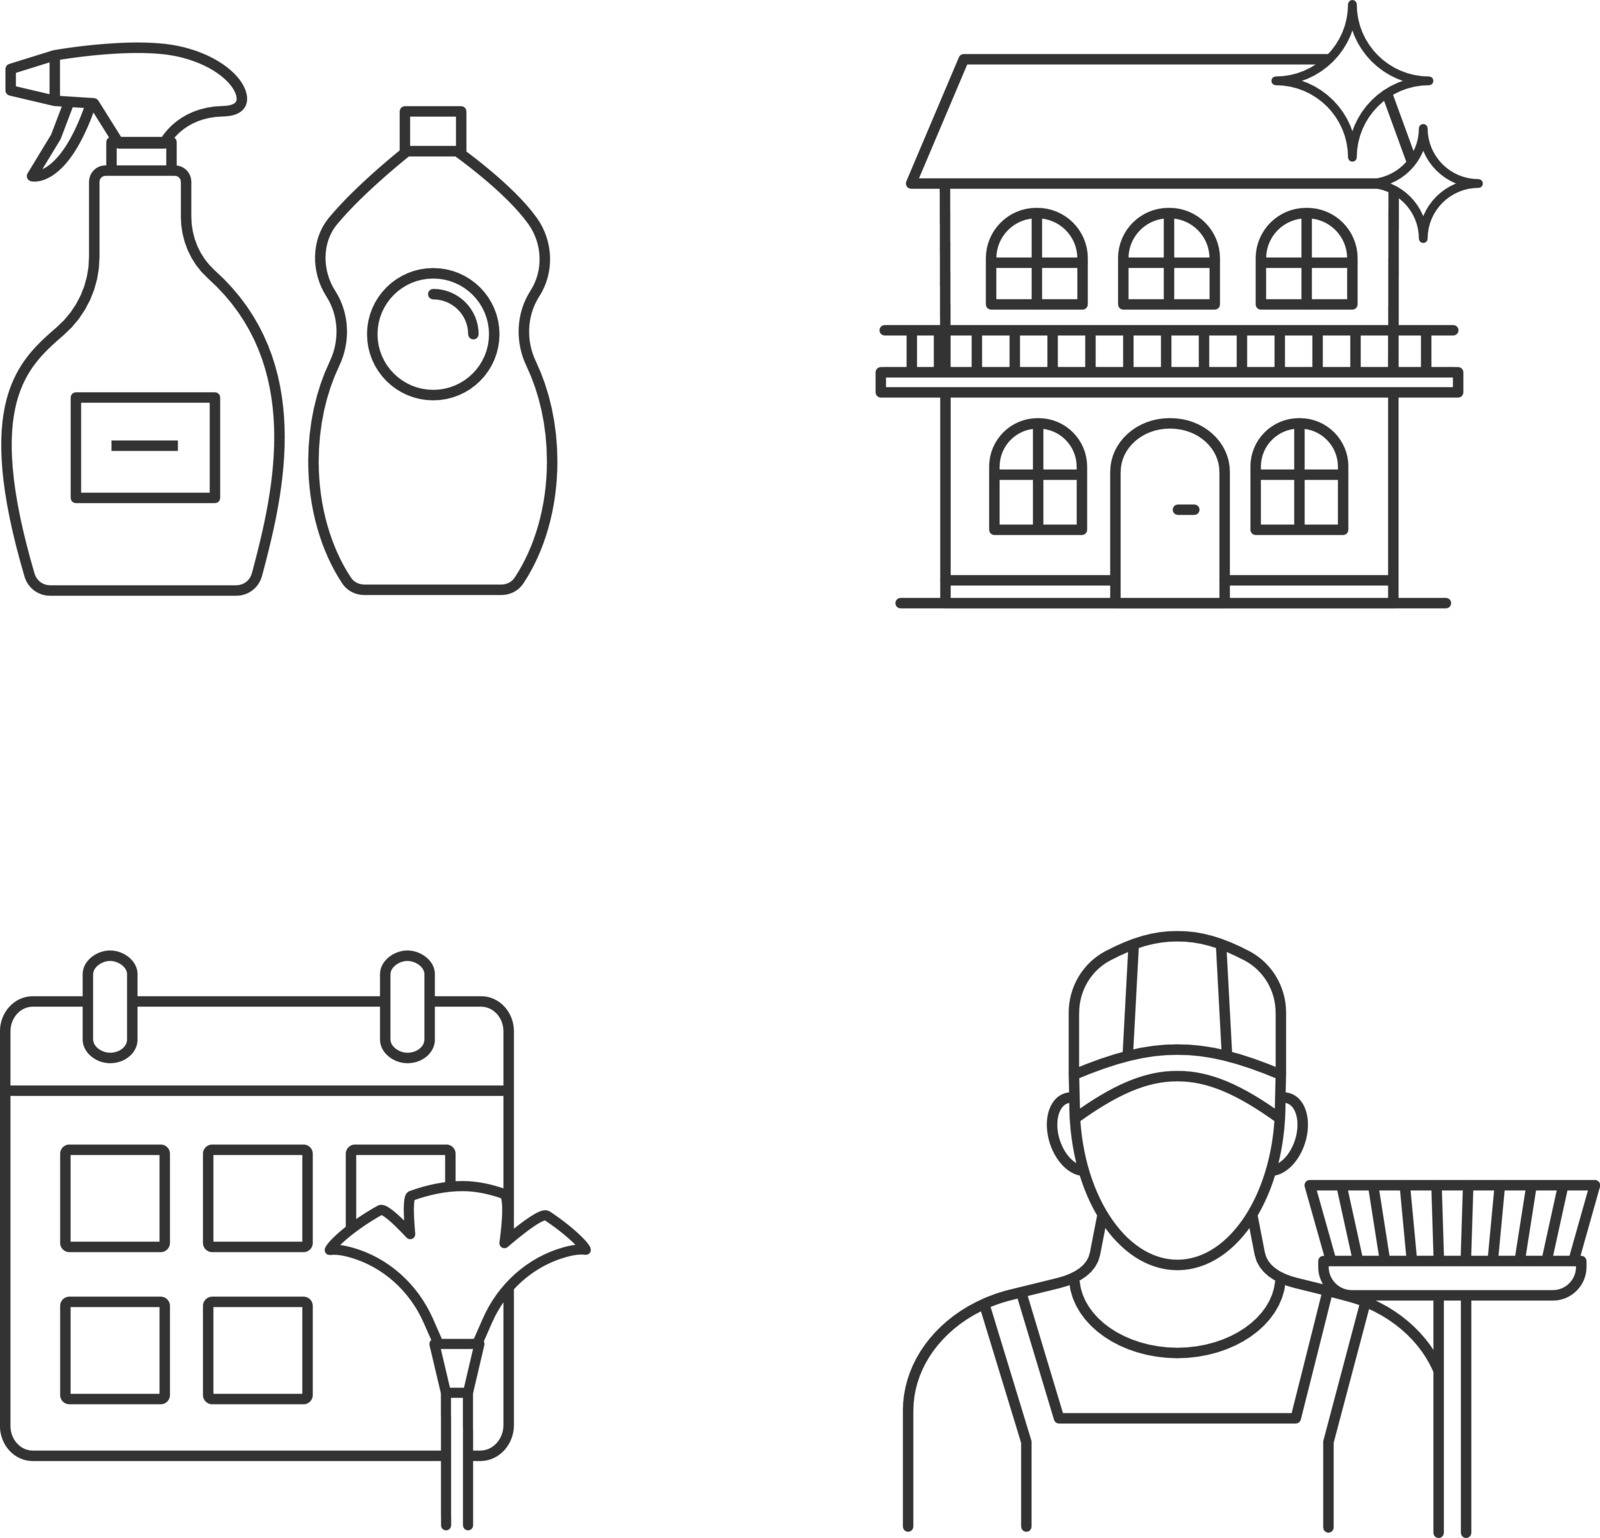 Cleaning service linear icons set. Sweeper, cleaning schedule, cleaners, cottage. Thin line contour symbols. Isolated vector outline illustrations. Editable stroke